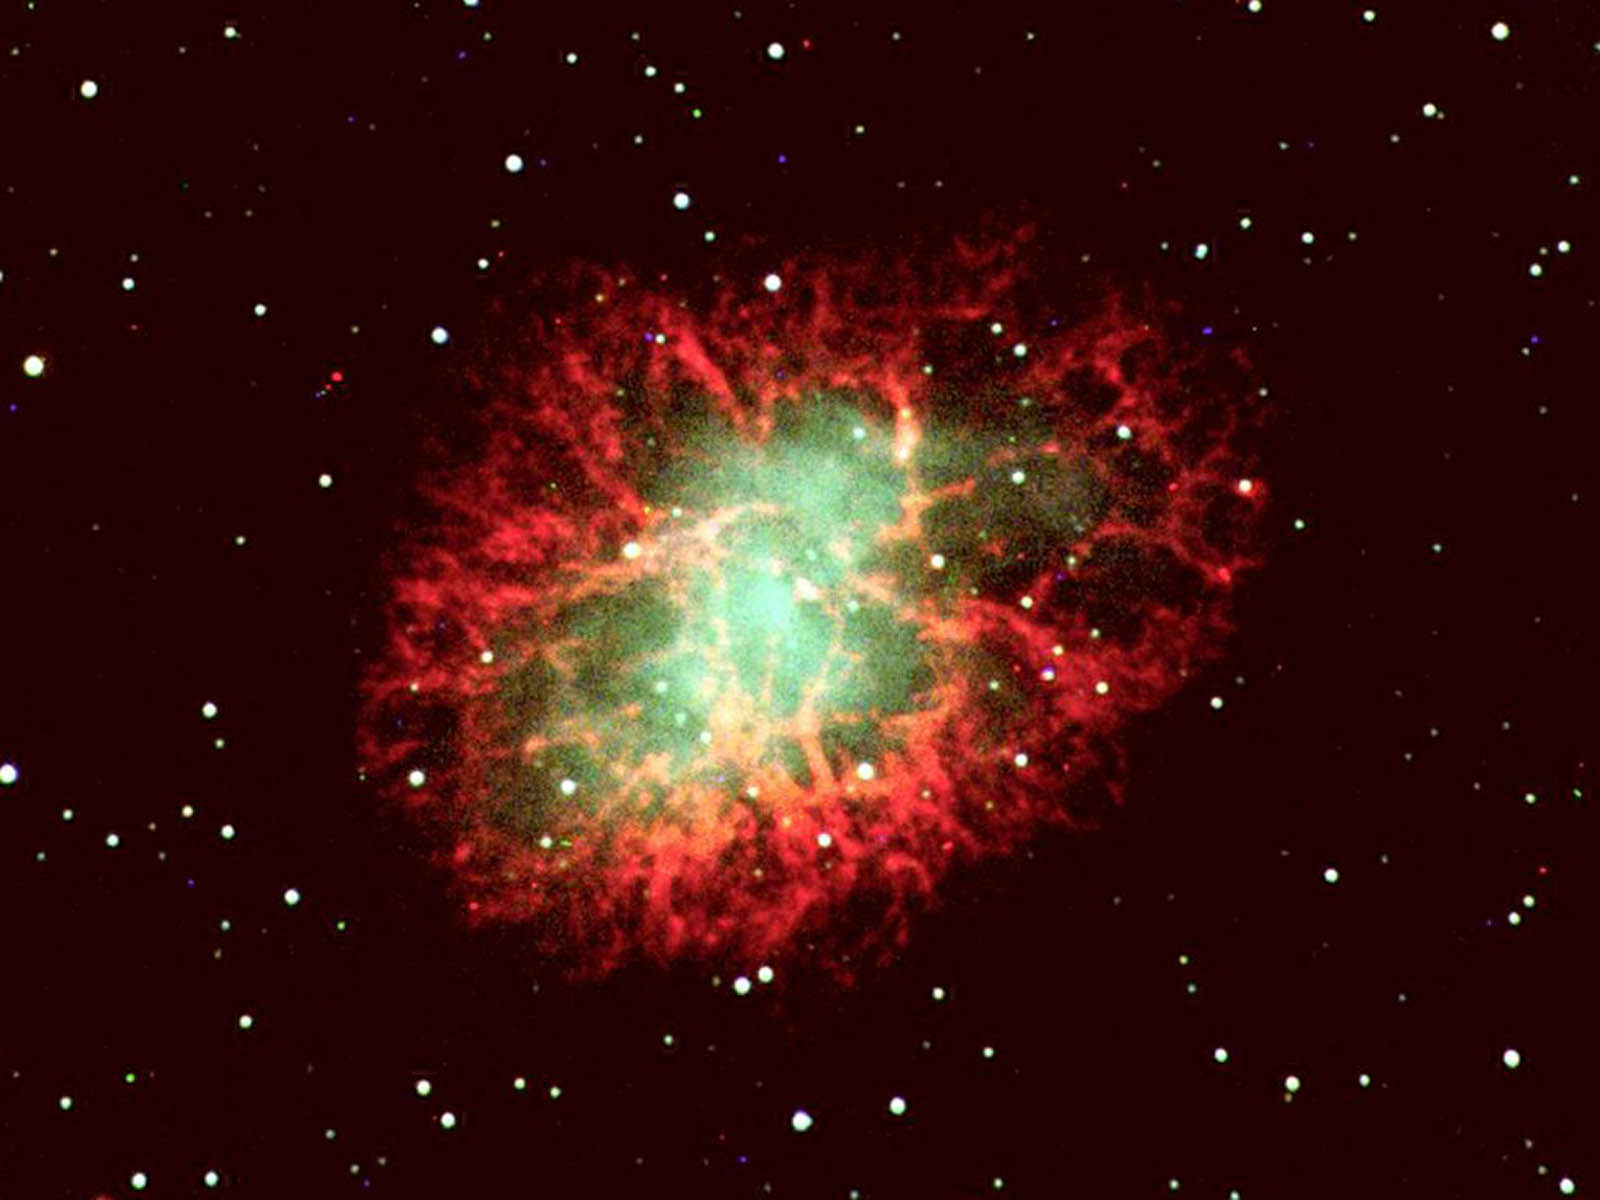 Tag Crab Nebula Wallpapers Images Photos Pictures and Backgrounds 1600x1200